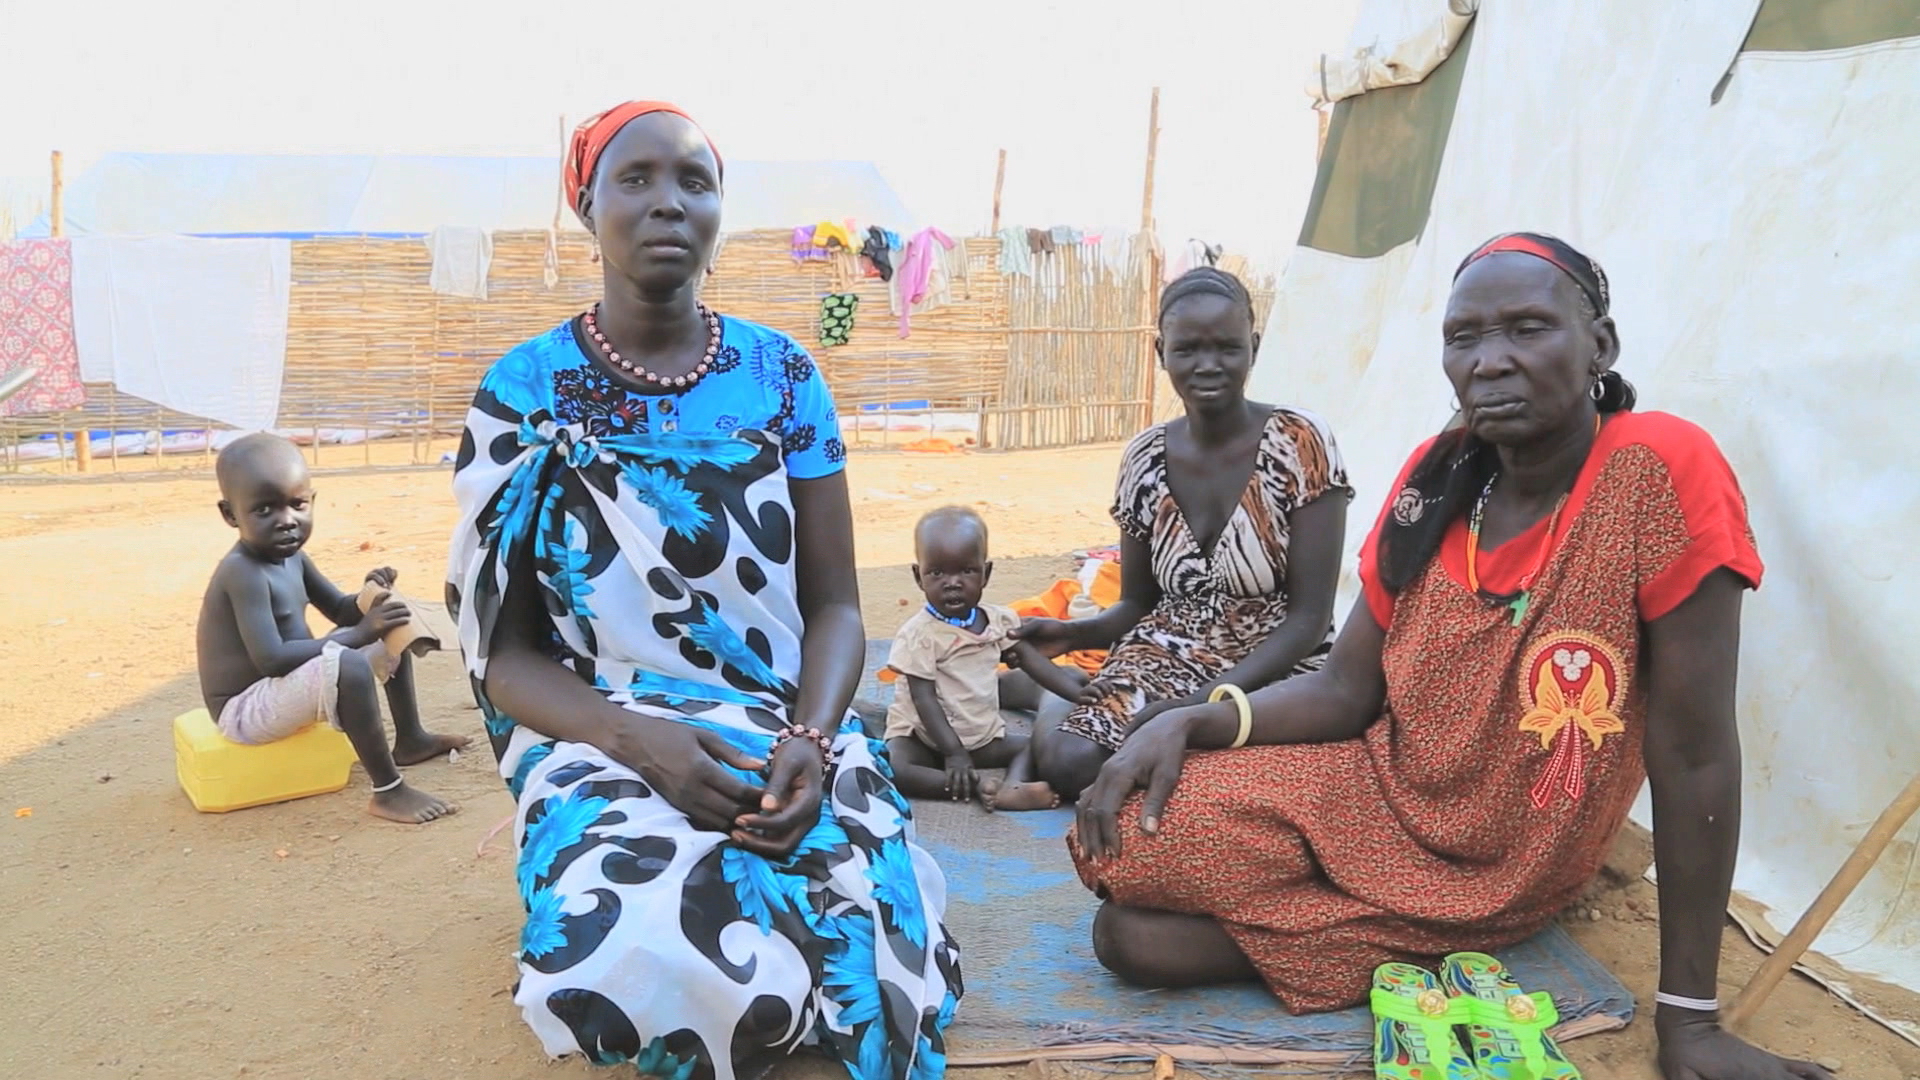 South Sudan: A nation in crisis